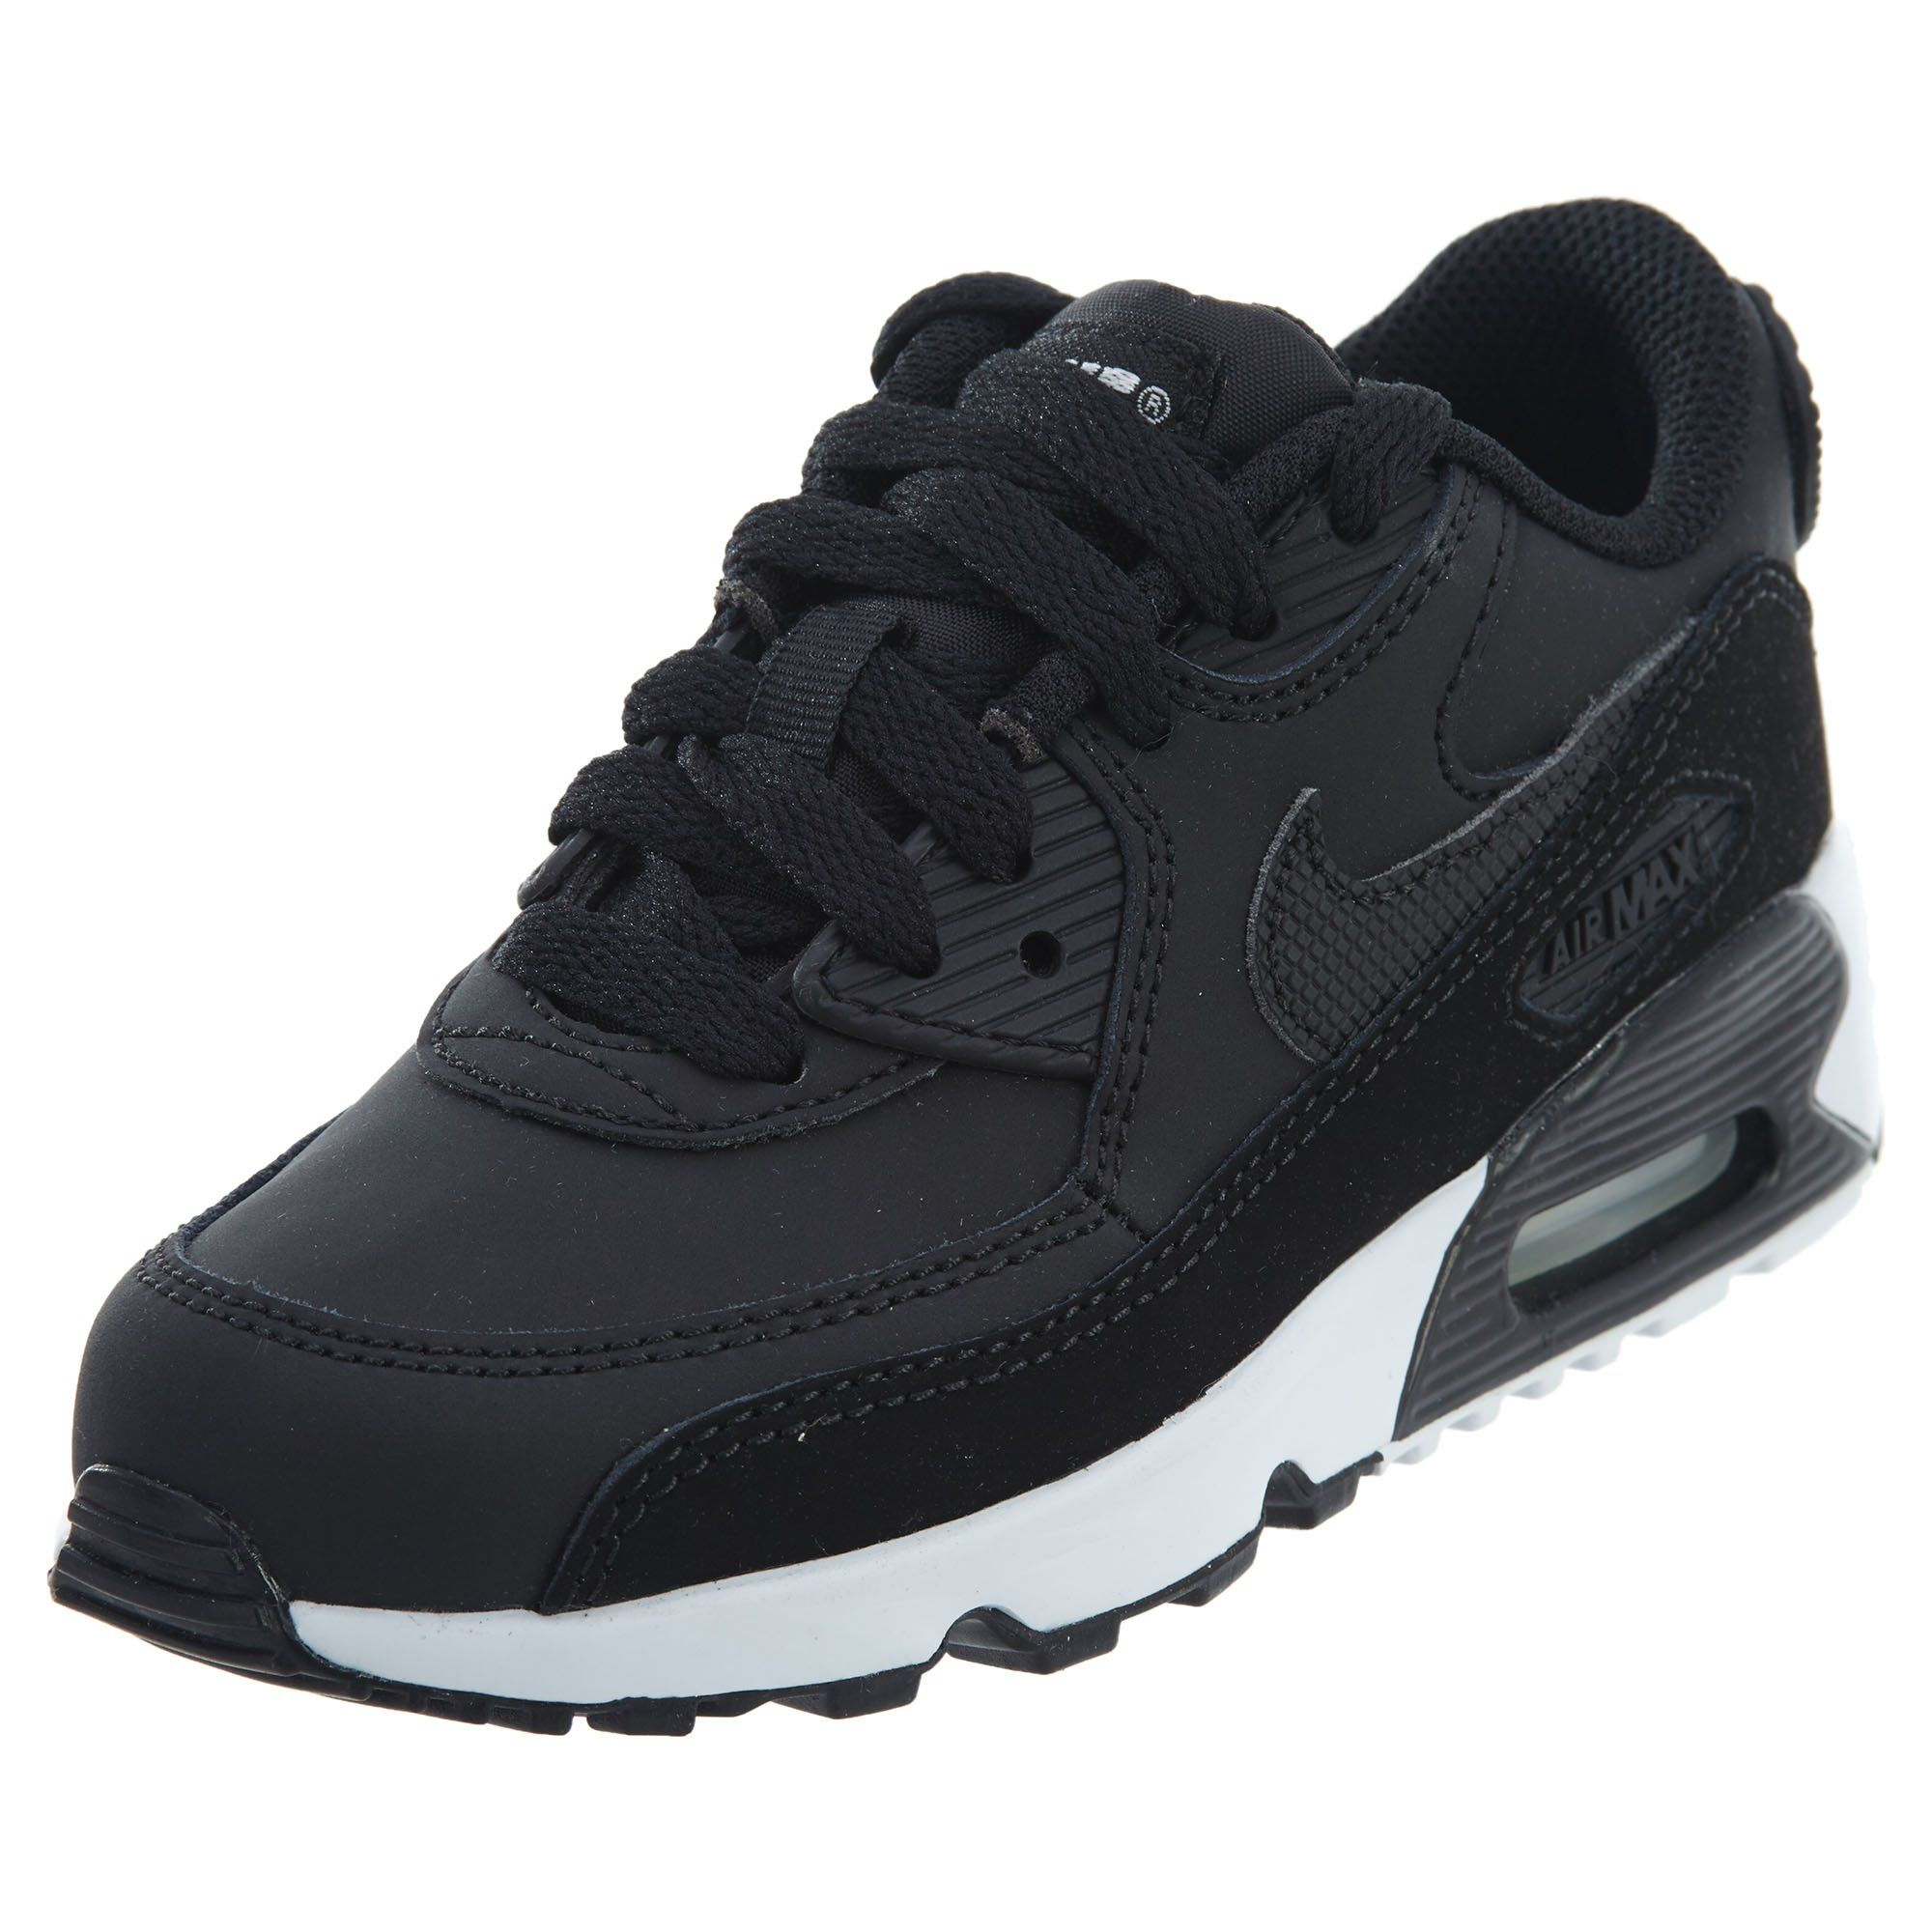 Nike Air Max 90 Ltr Little Kids Style